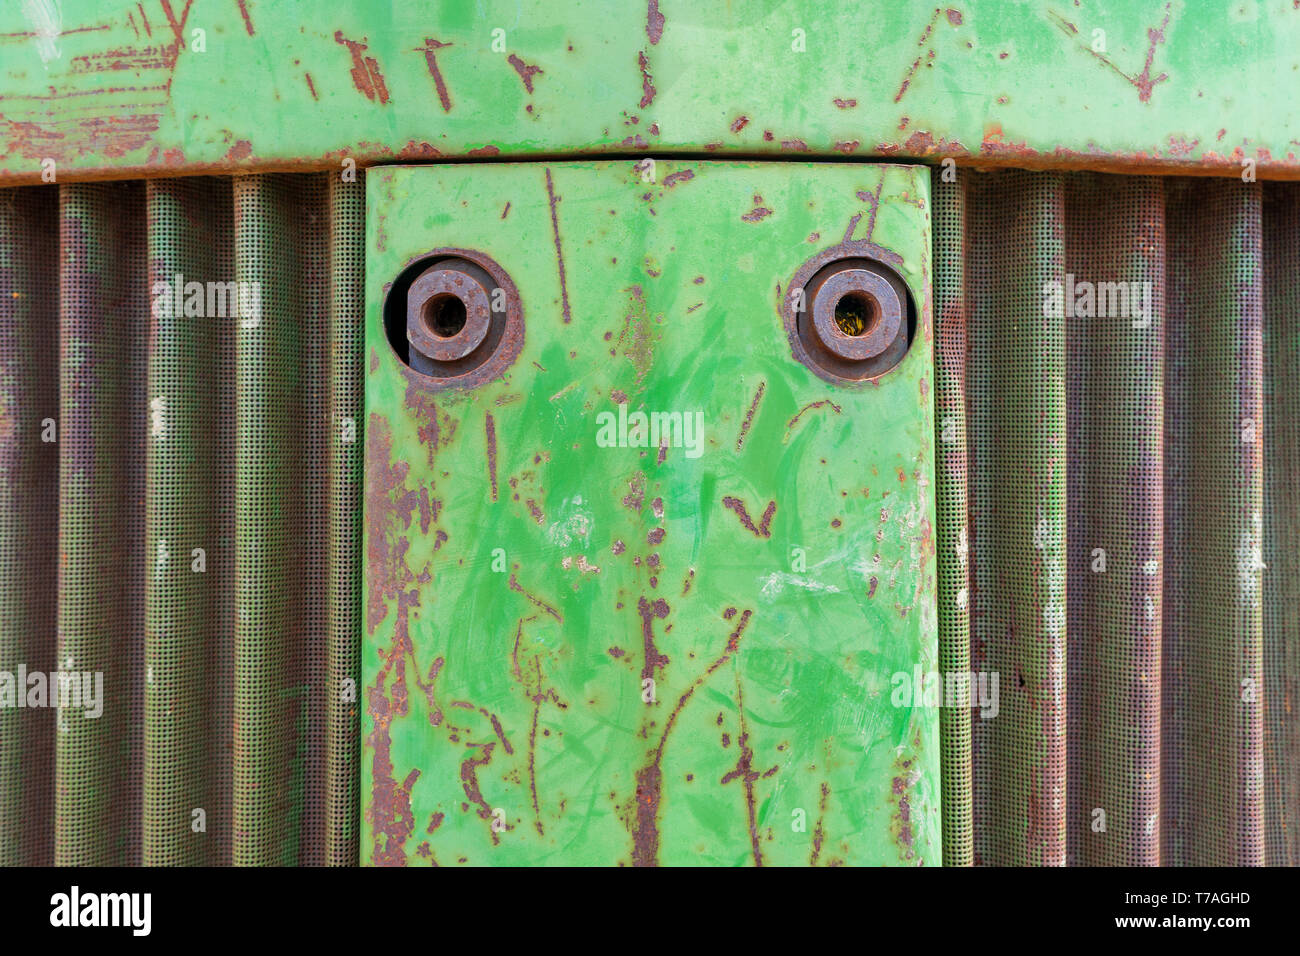 Front nose of farm equipment tractor. Metal background photo with rust, curvy metal vent and green chipping paint. - Stock Image